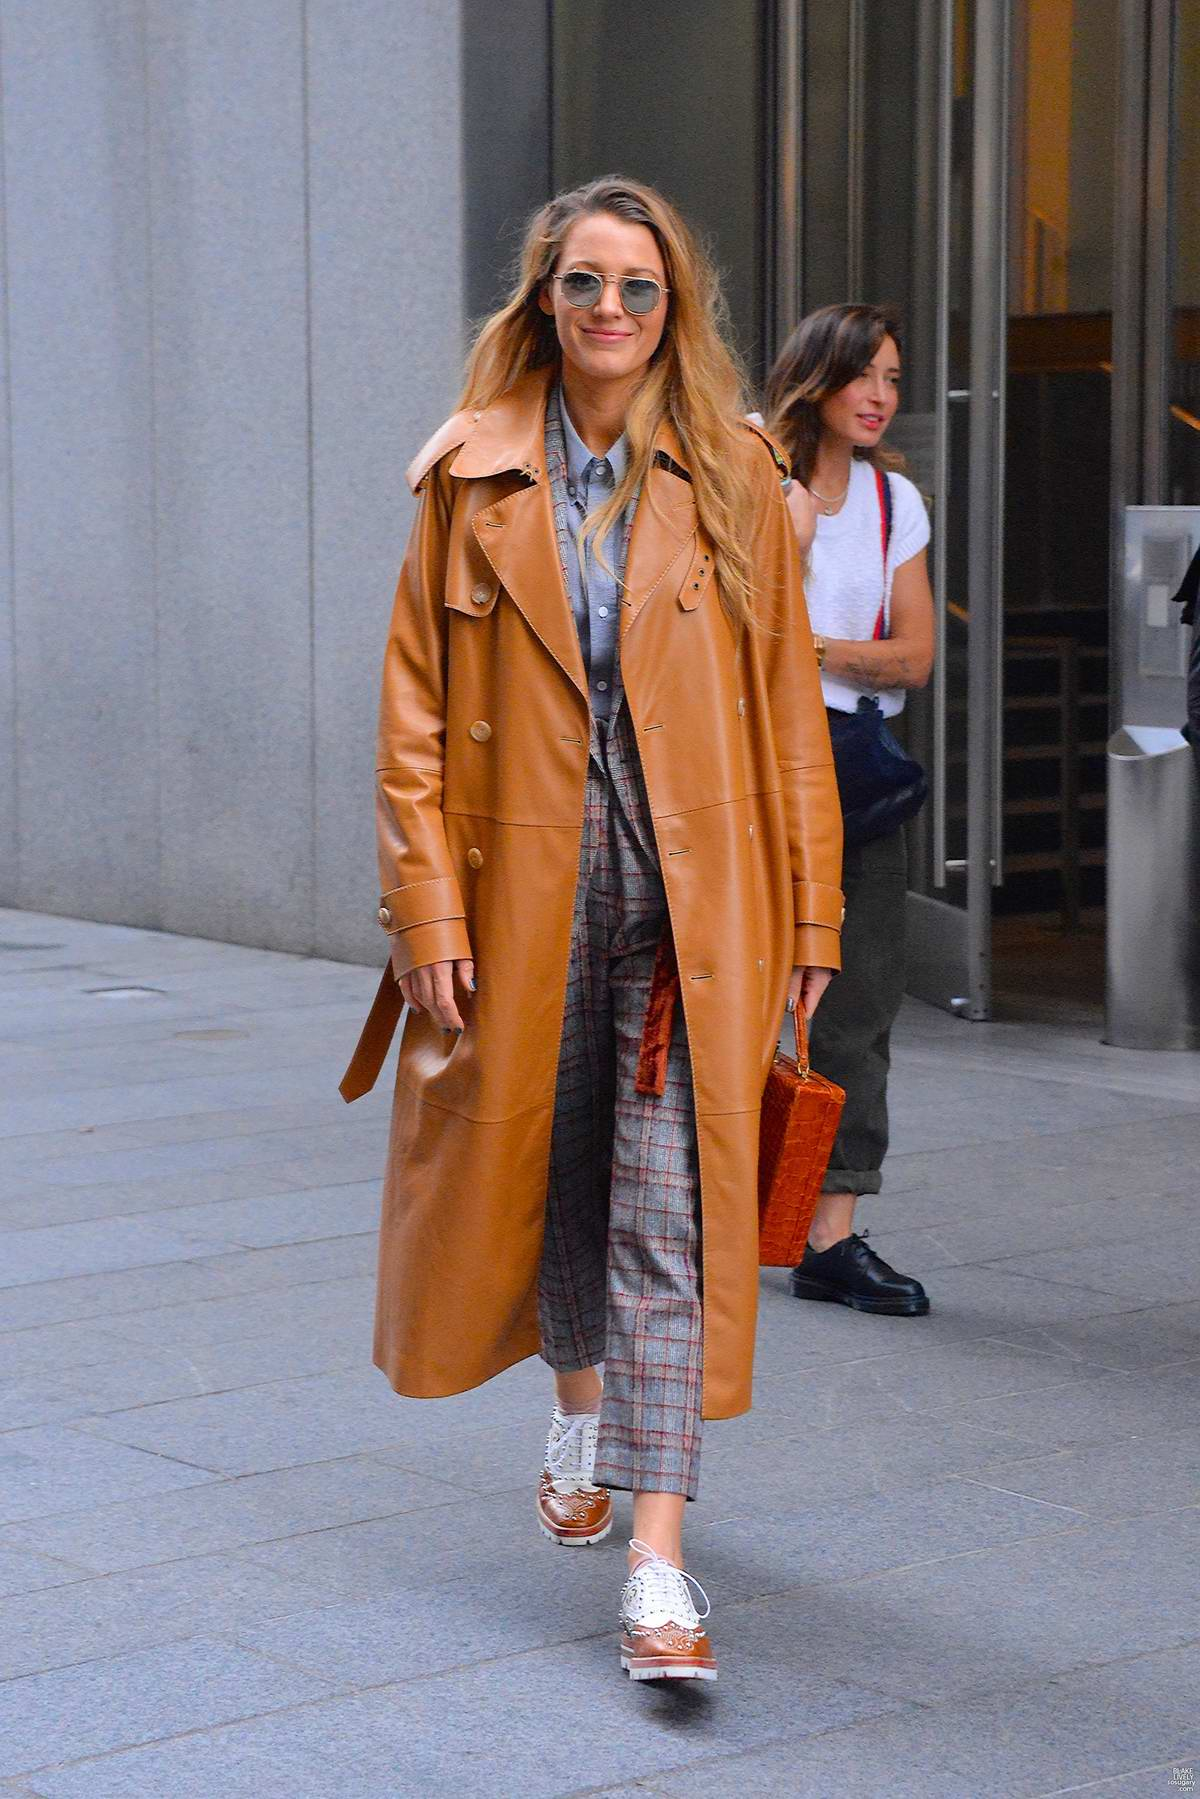 Blake Lively spotted in a brown leather overcoat as she leaves her hotel in New York City